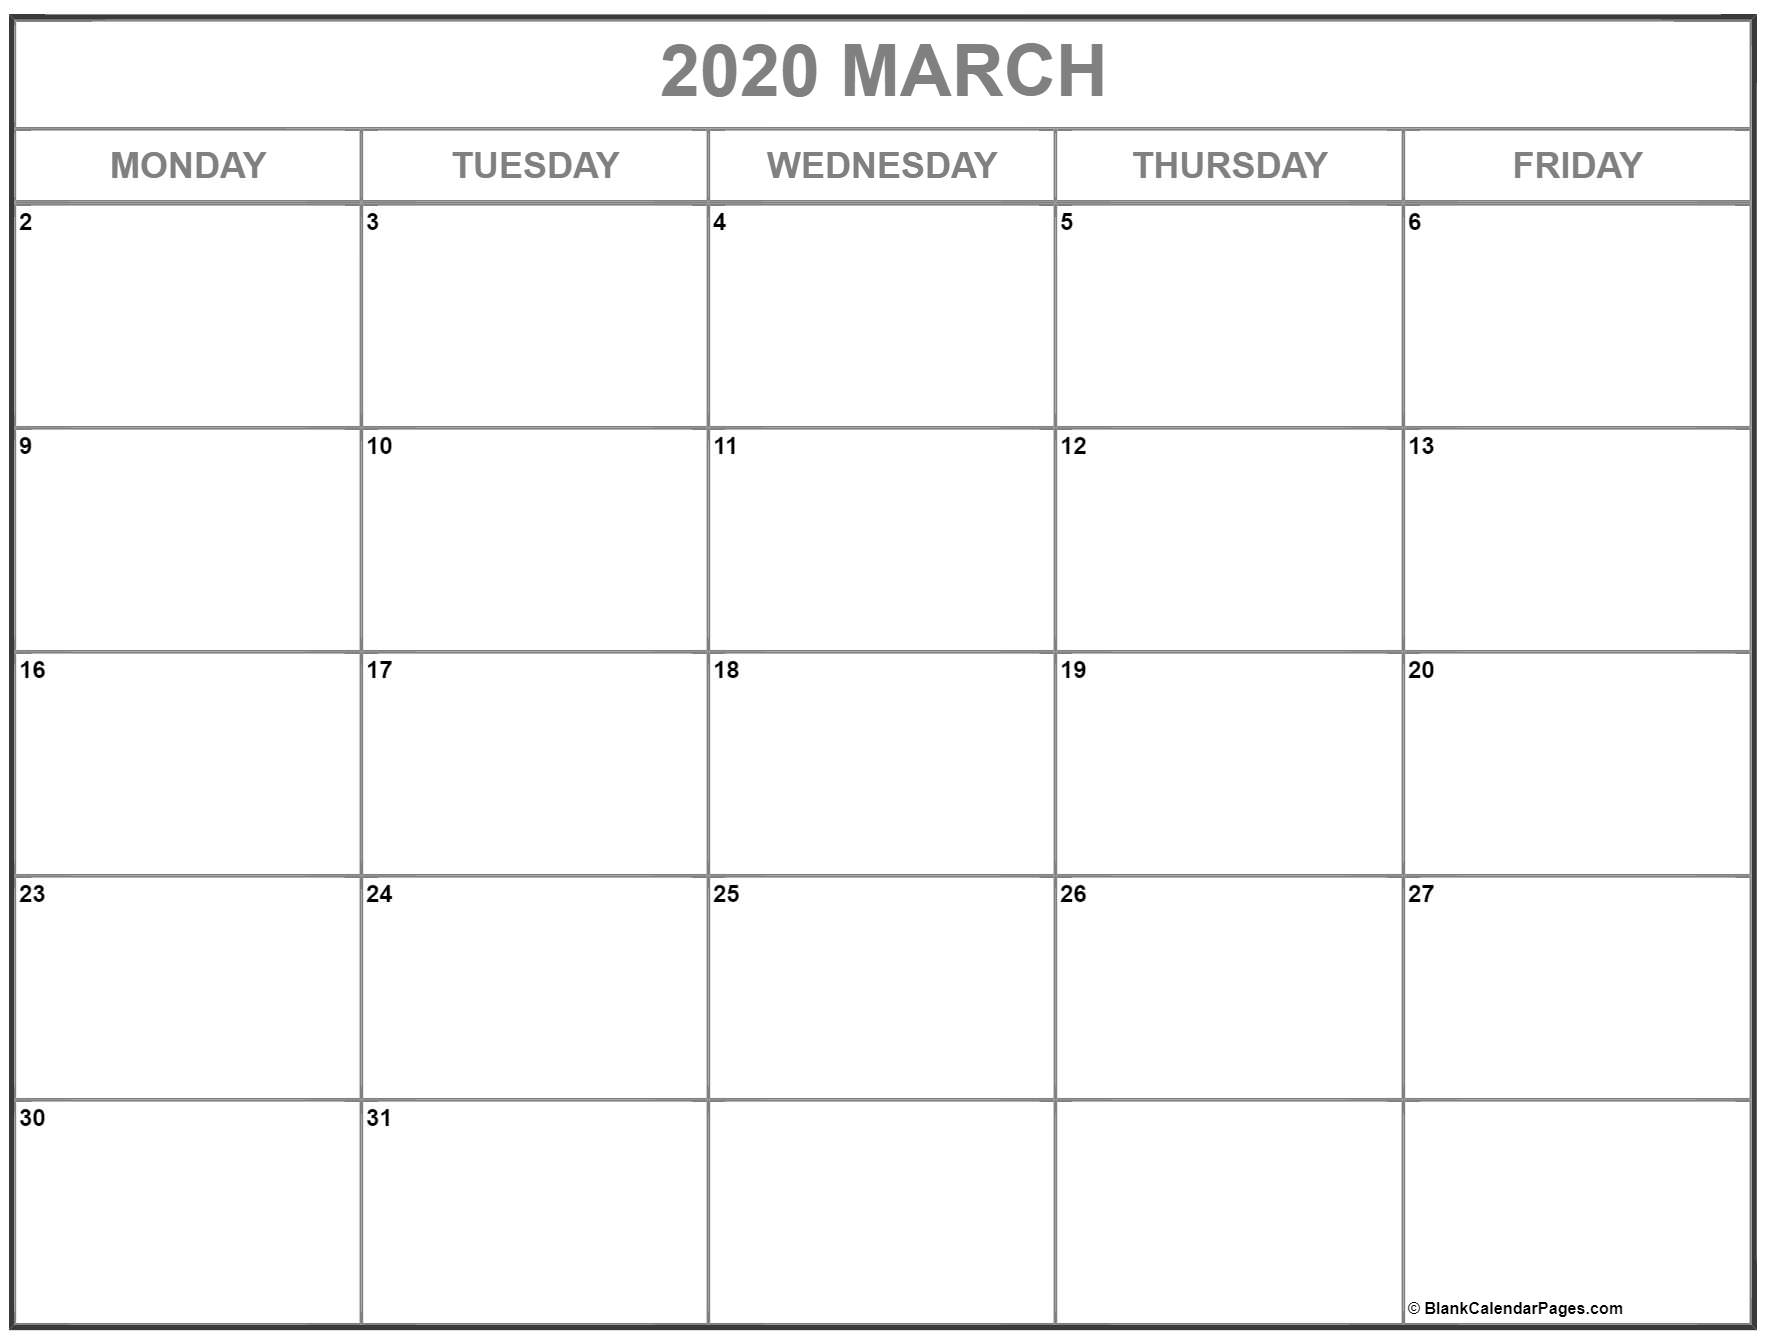 March 2020 Monday Calendar | Monday To Sunday within 2020 Calendar That Shows Only Monday Through Friday